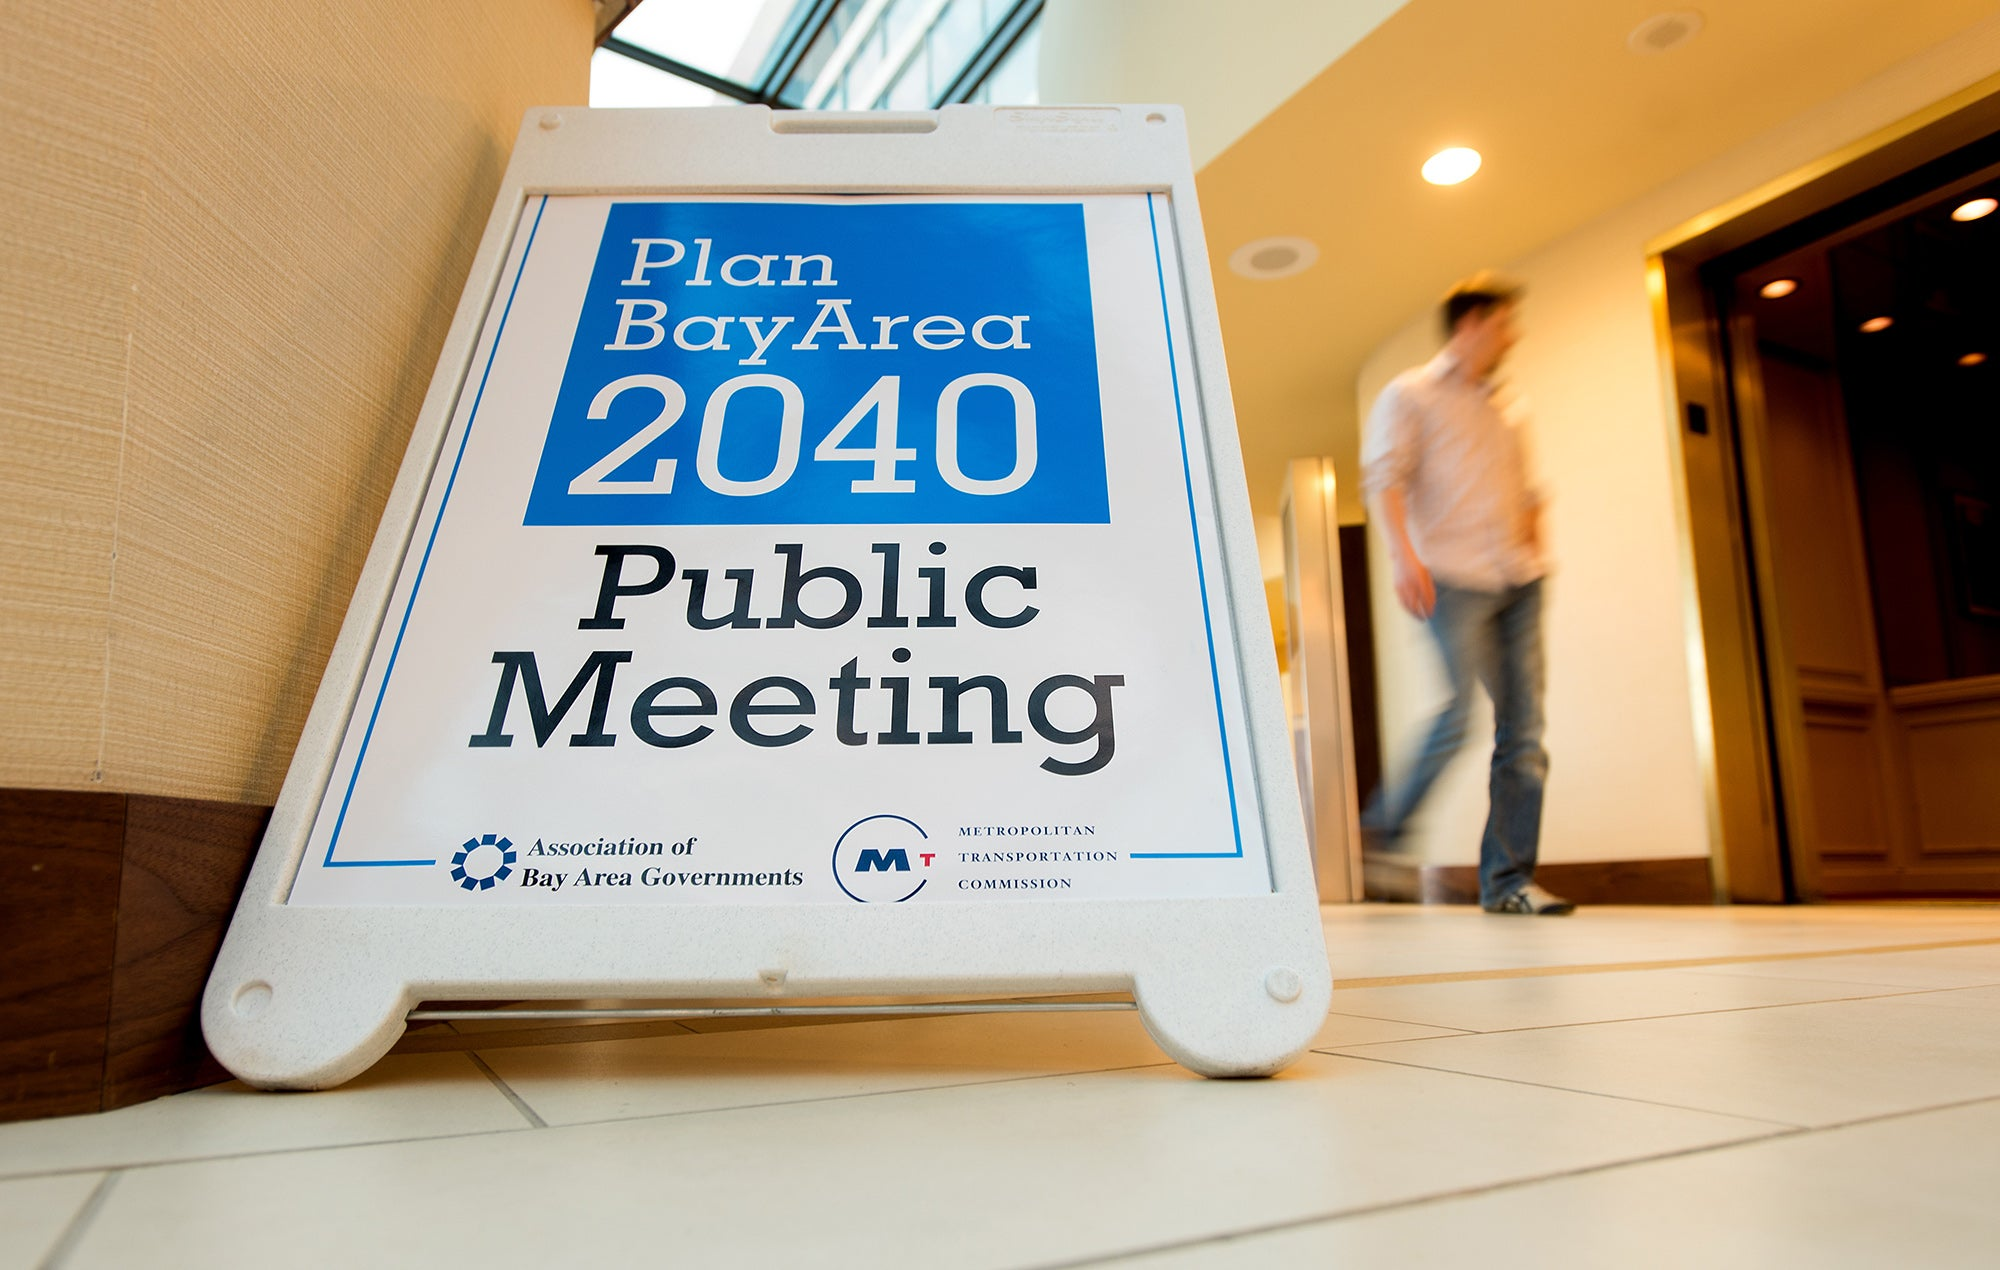 Plan Bay Area meeting sign